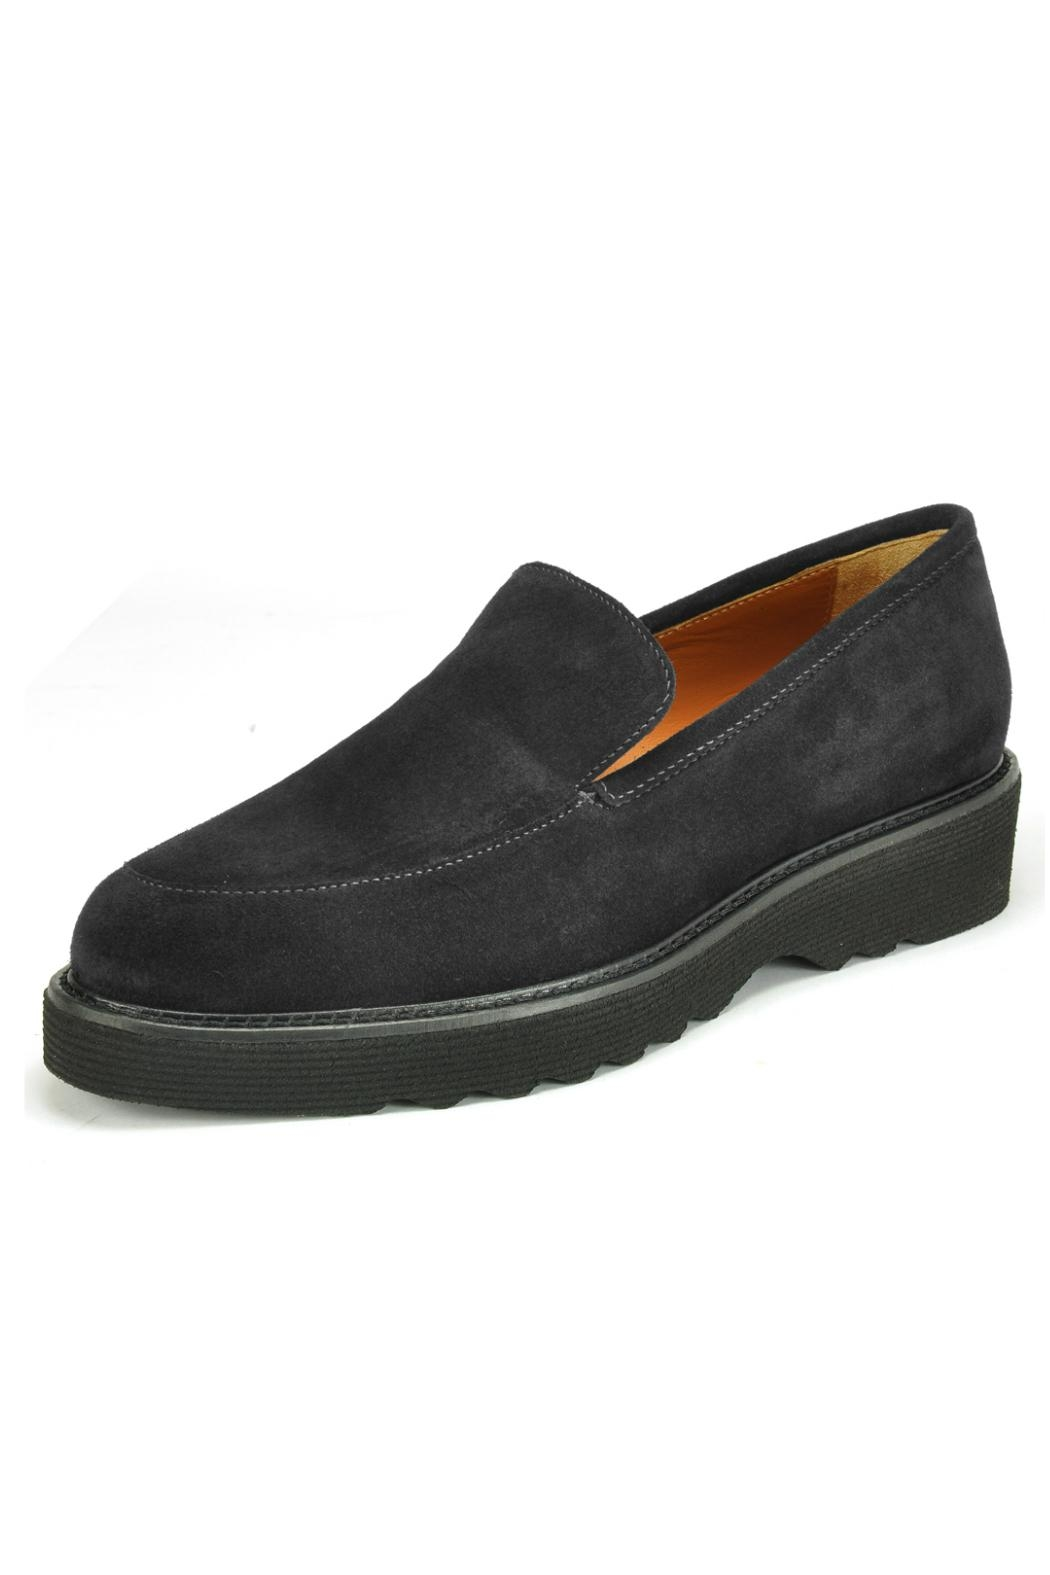 Aquatalia Kelsey Suede Loafer - Main Image